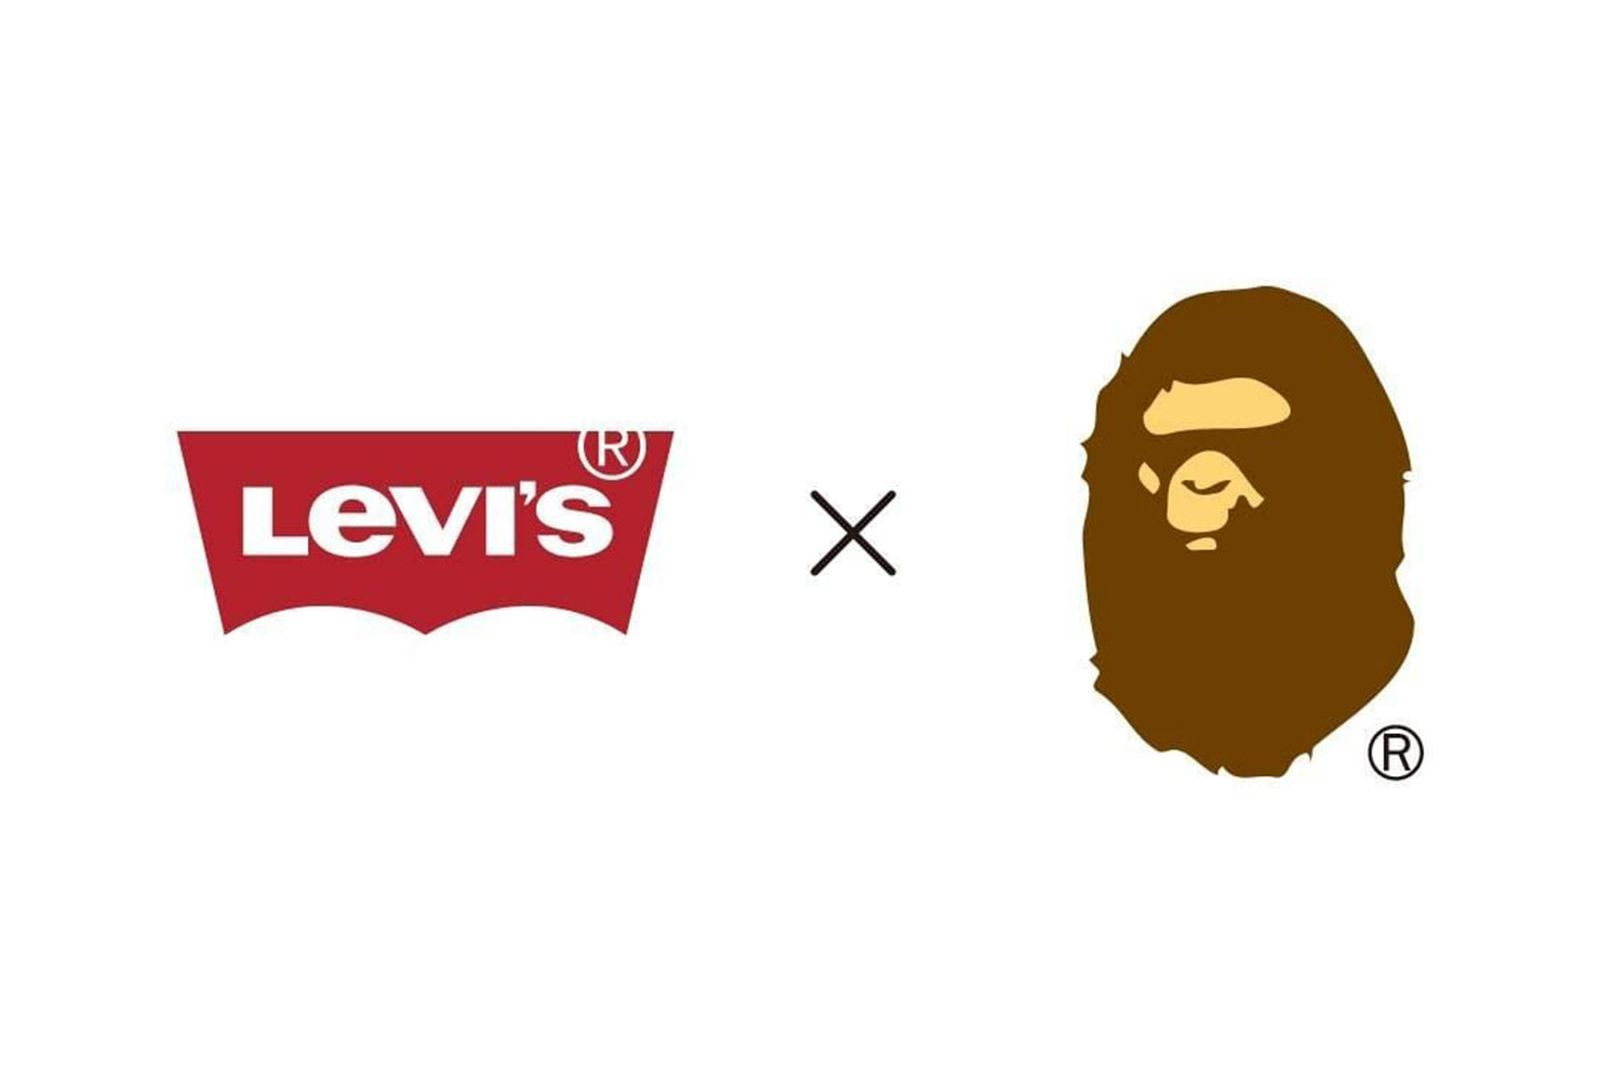 BAPE Levi's collaboration announcement